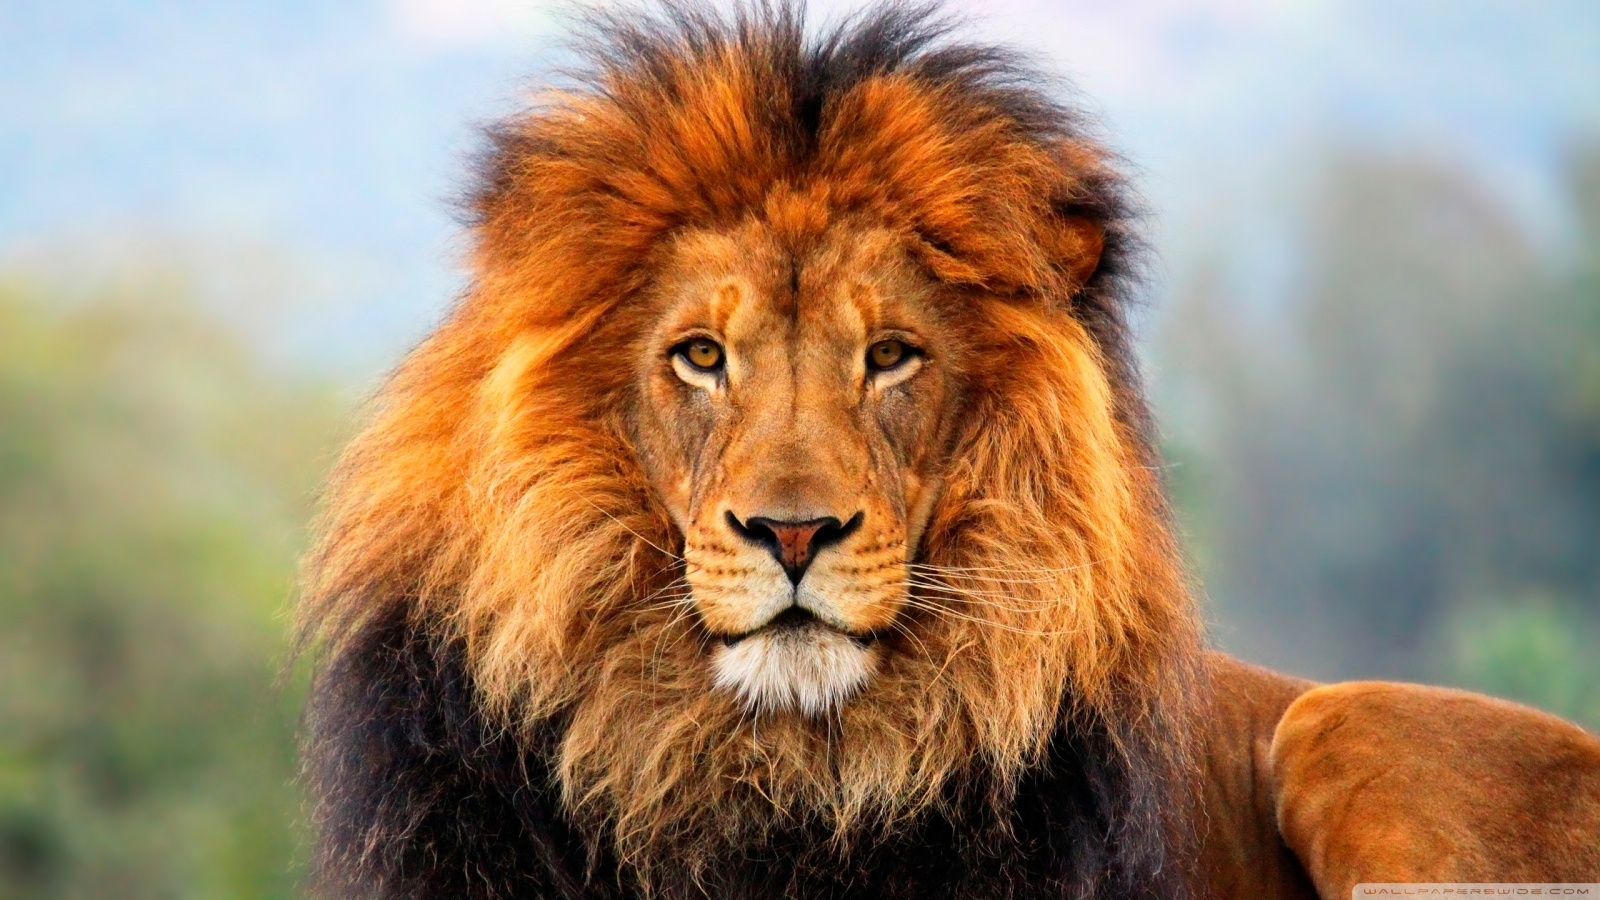 tiger lions wallpapers lion hd wallpapers lion attack hd pictures lion 1600x900